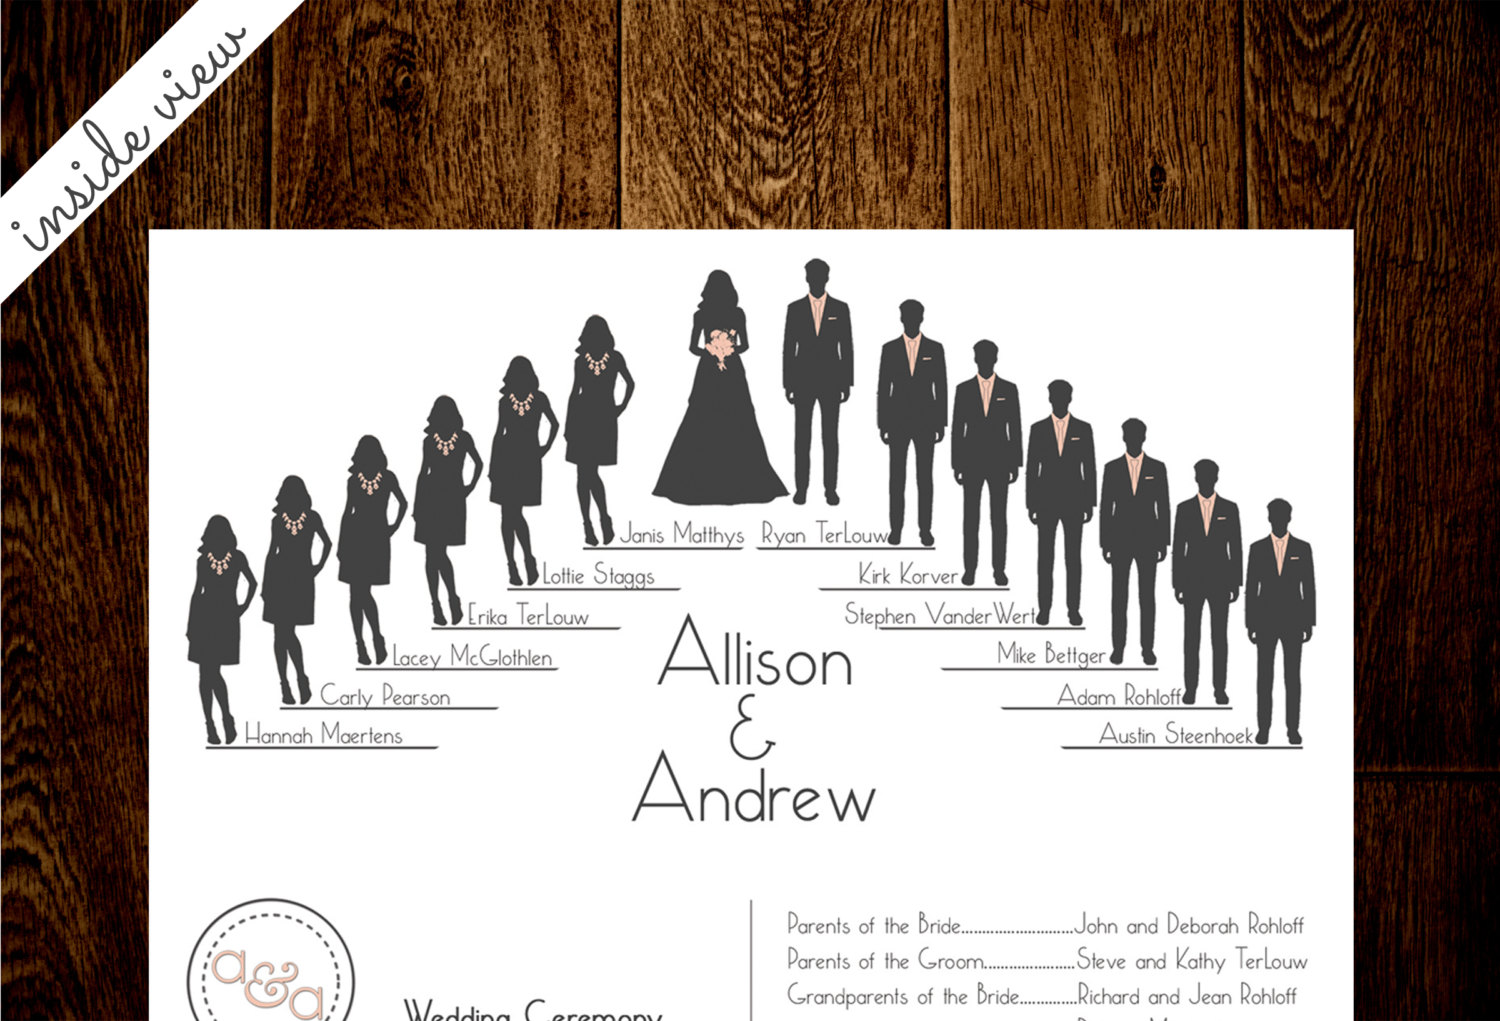 Bridal Party Clipart - Clipart Kid